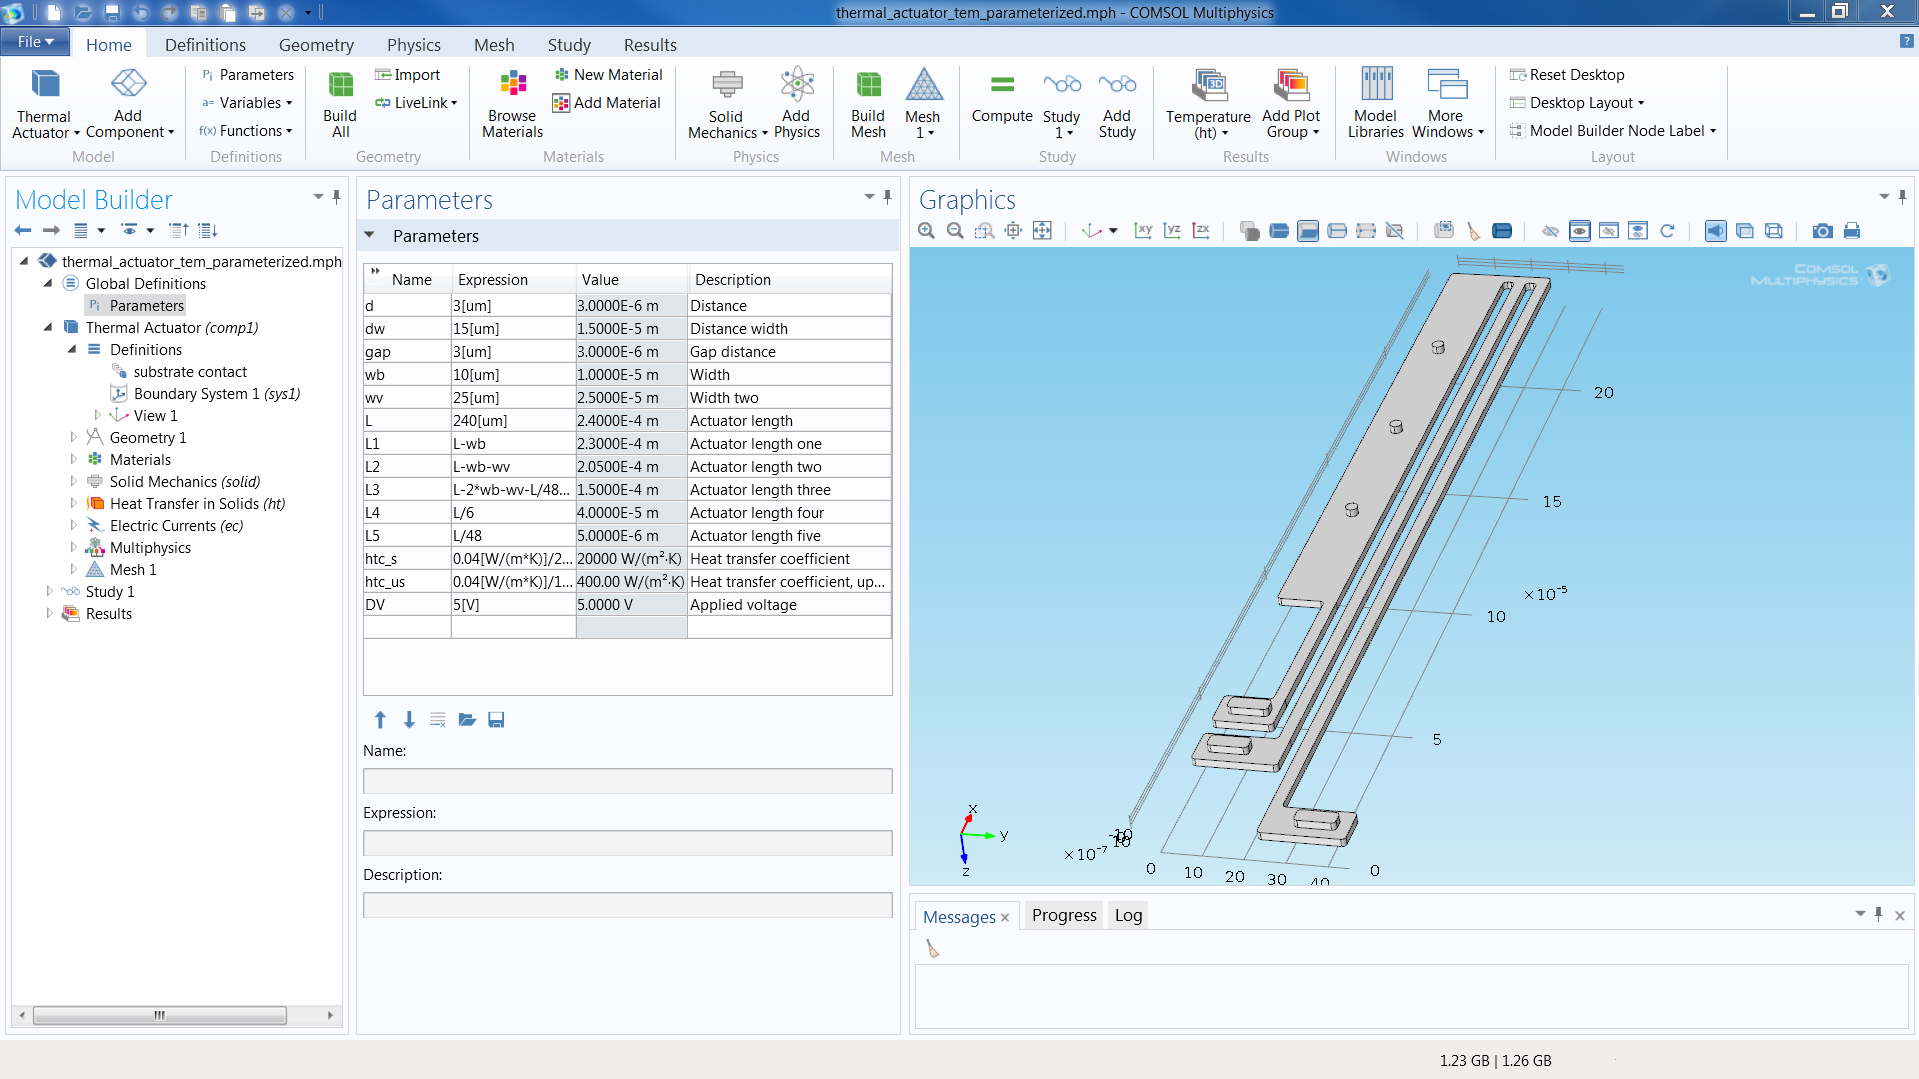 Geometry Modeling: COMSOL Multiphysics includes a geometry modeling engine that allows for parametric models in 1D, 2D, and 3D. More advanced geometry modeling is available with the CAD Import Module and the LiveLink products for CAD.